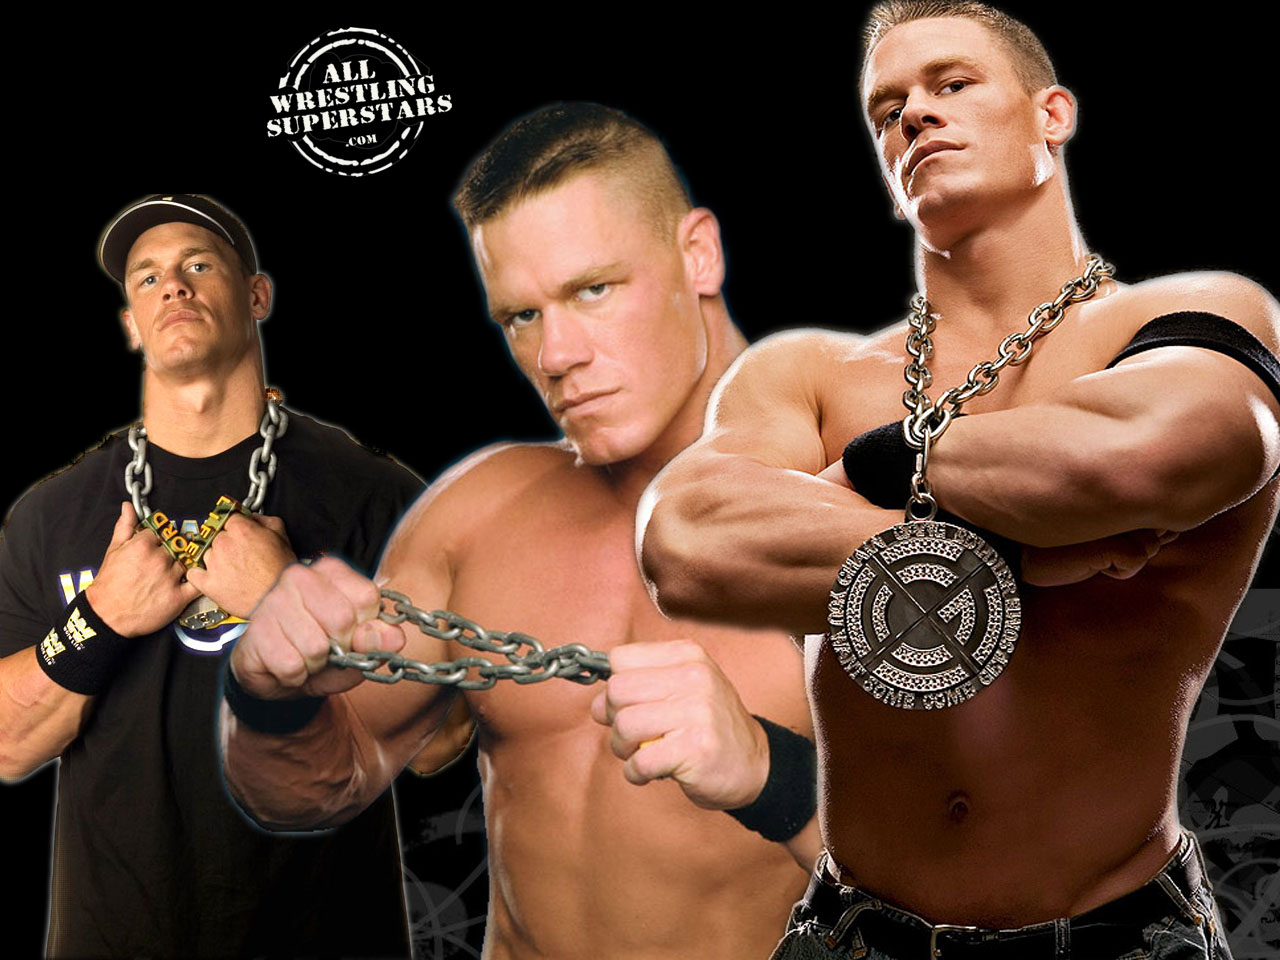 John Cena Hd Wallpapers 2012